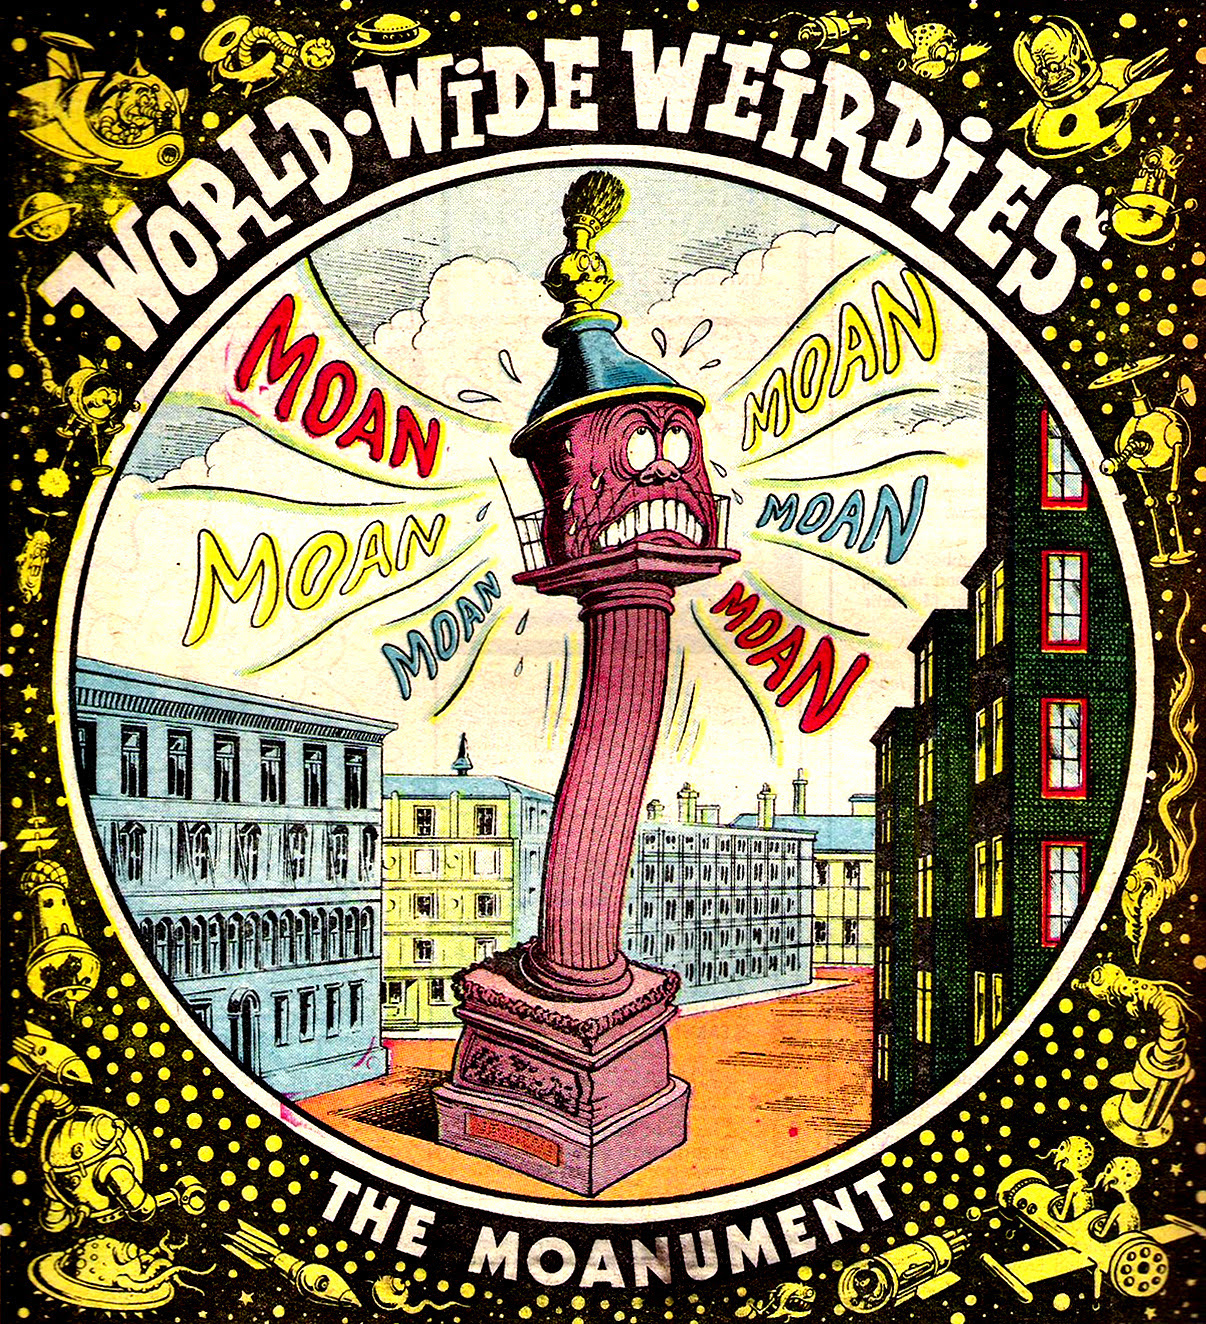 Ken Reid - World Wide Weirdies 69